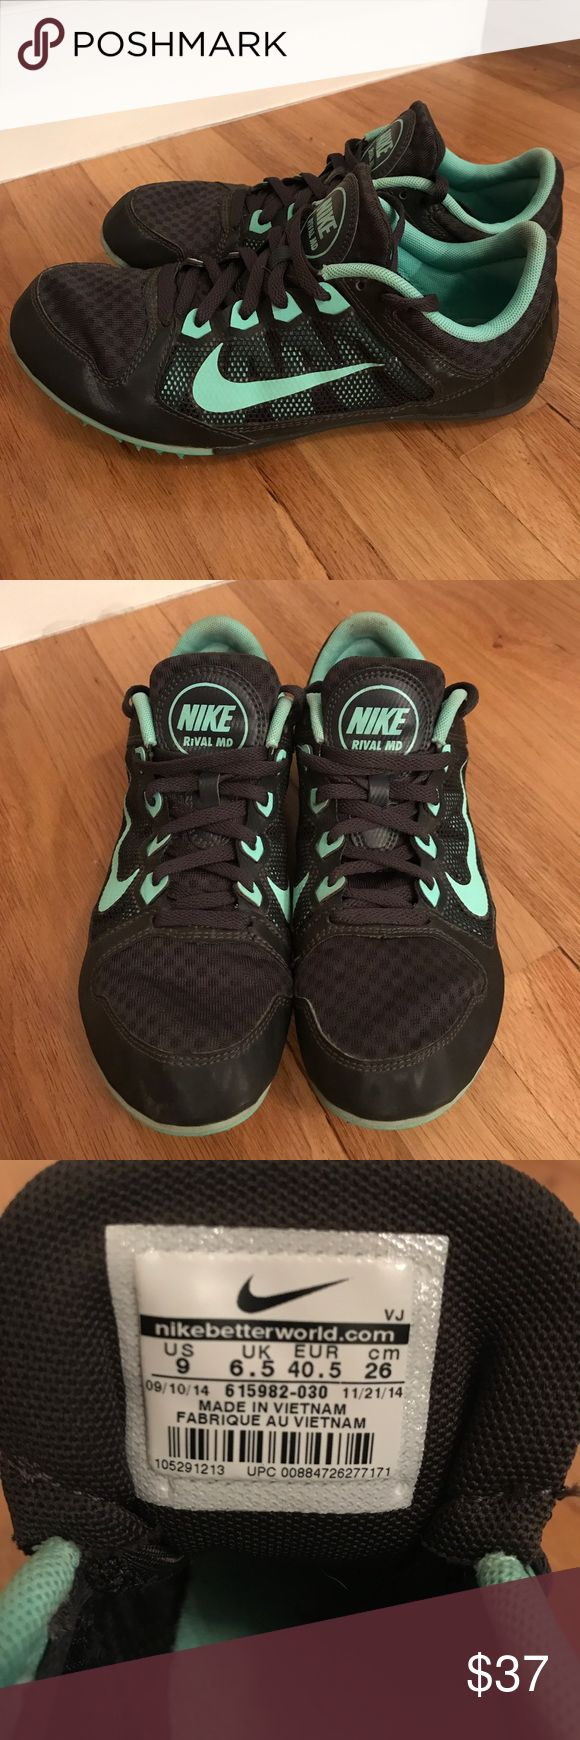 Nike Rival MD Track Shoes Used, still in great condition Size: 9 Bought from: Sports Authority  Color: Black / Teal Blue Inside: Teal Blue Additional Info: Used for pole vaulting and sprinting, includes a track and field draw string bag, additional track spikes and a track wrench.   Reason for selling: Not needed   Selling for $37 or Best Offer Nike Shoes Athletic Shoes